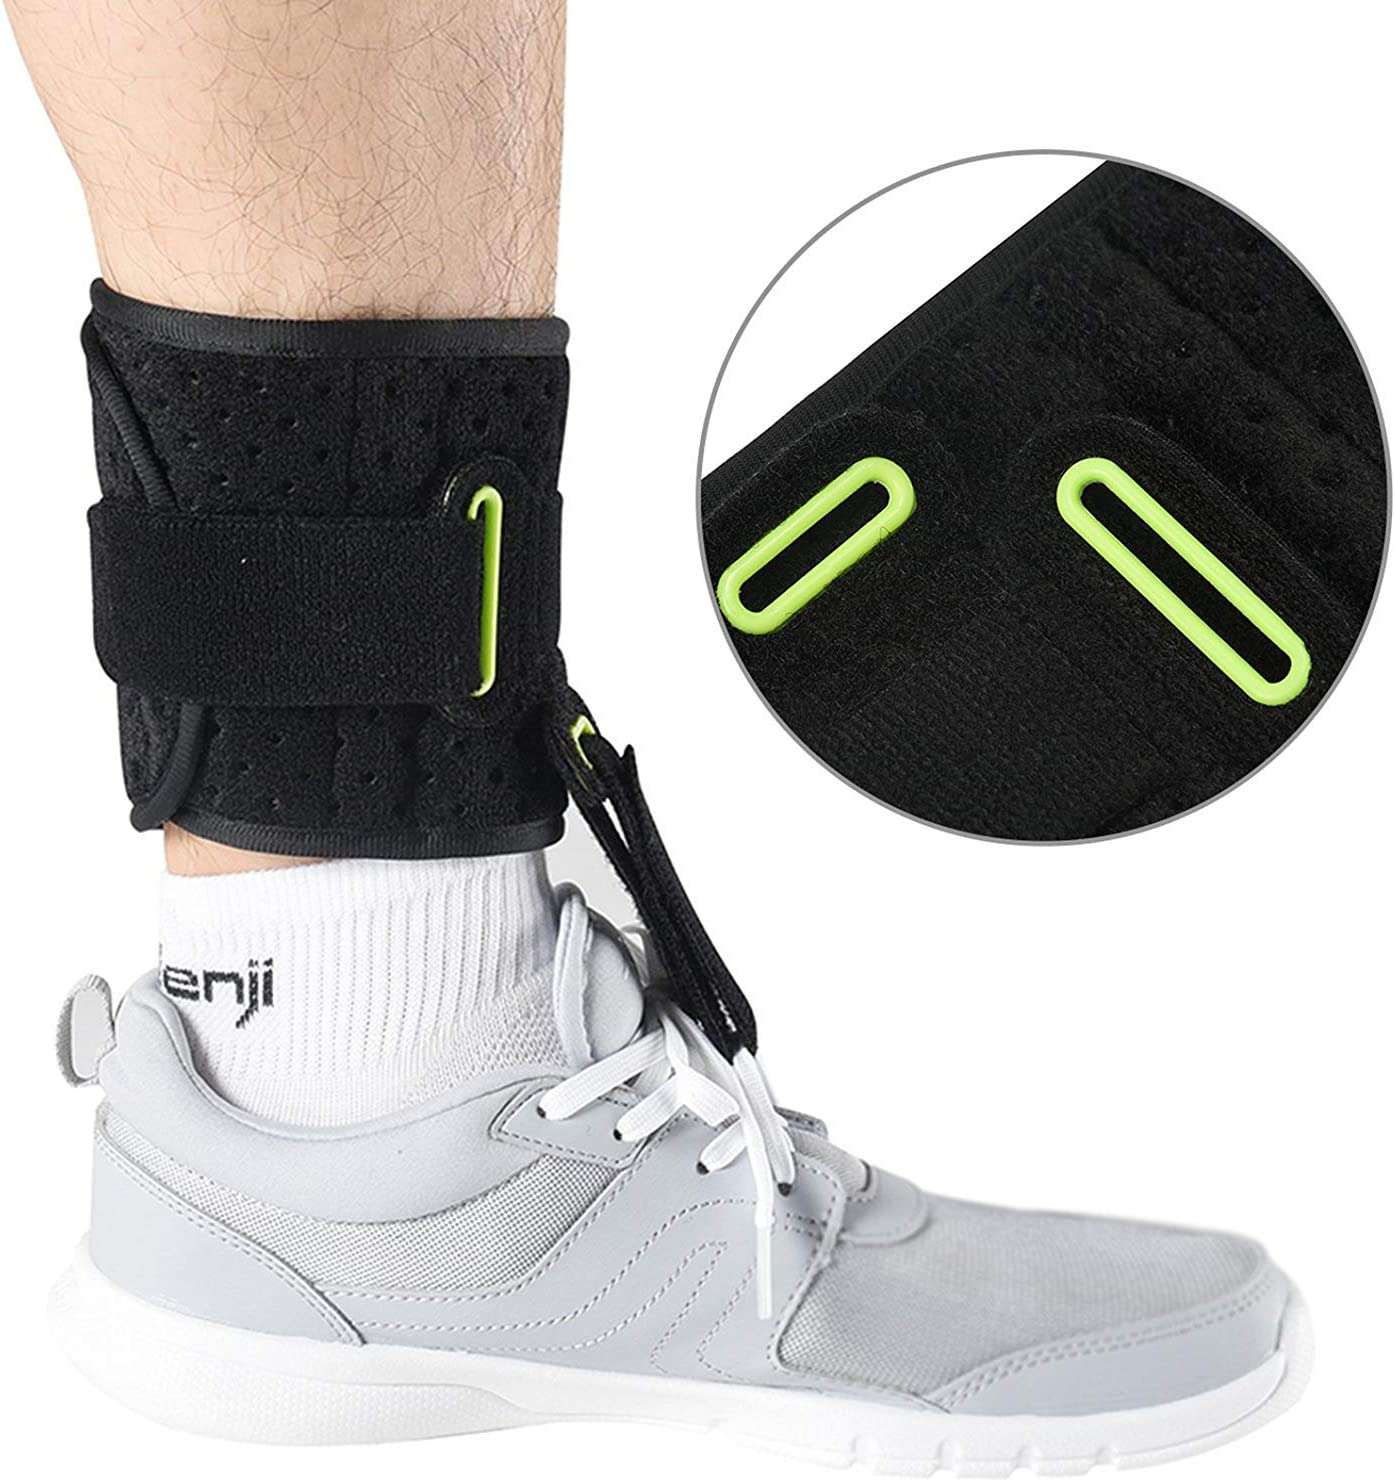 TENBON Ankle Support Drop Foot Brace Orthosis - Comfort Cushioned Adjustable Wrap Compression for Improved Walking Gait, Prevents Cramps Ankle Sprains